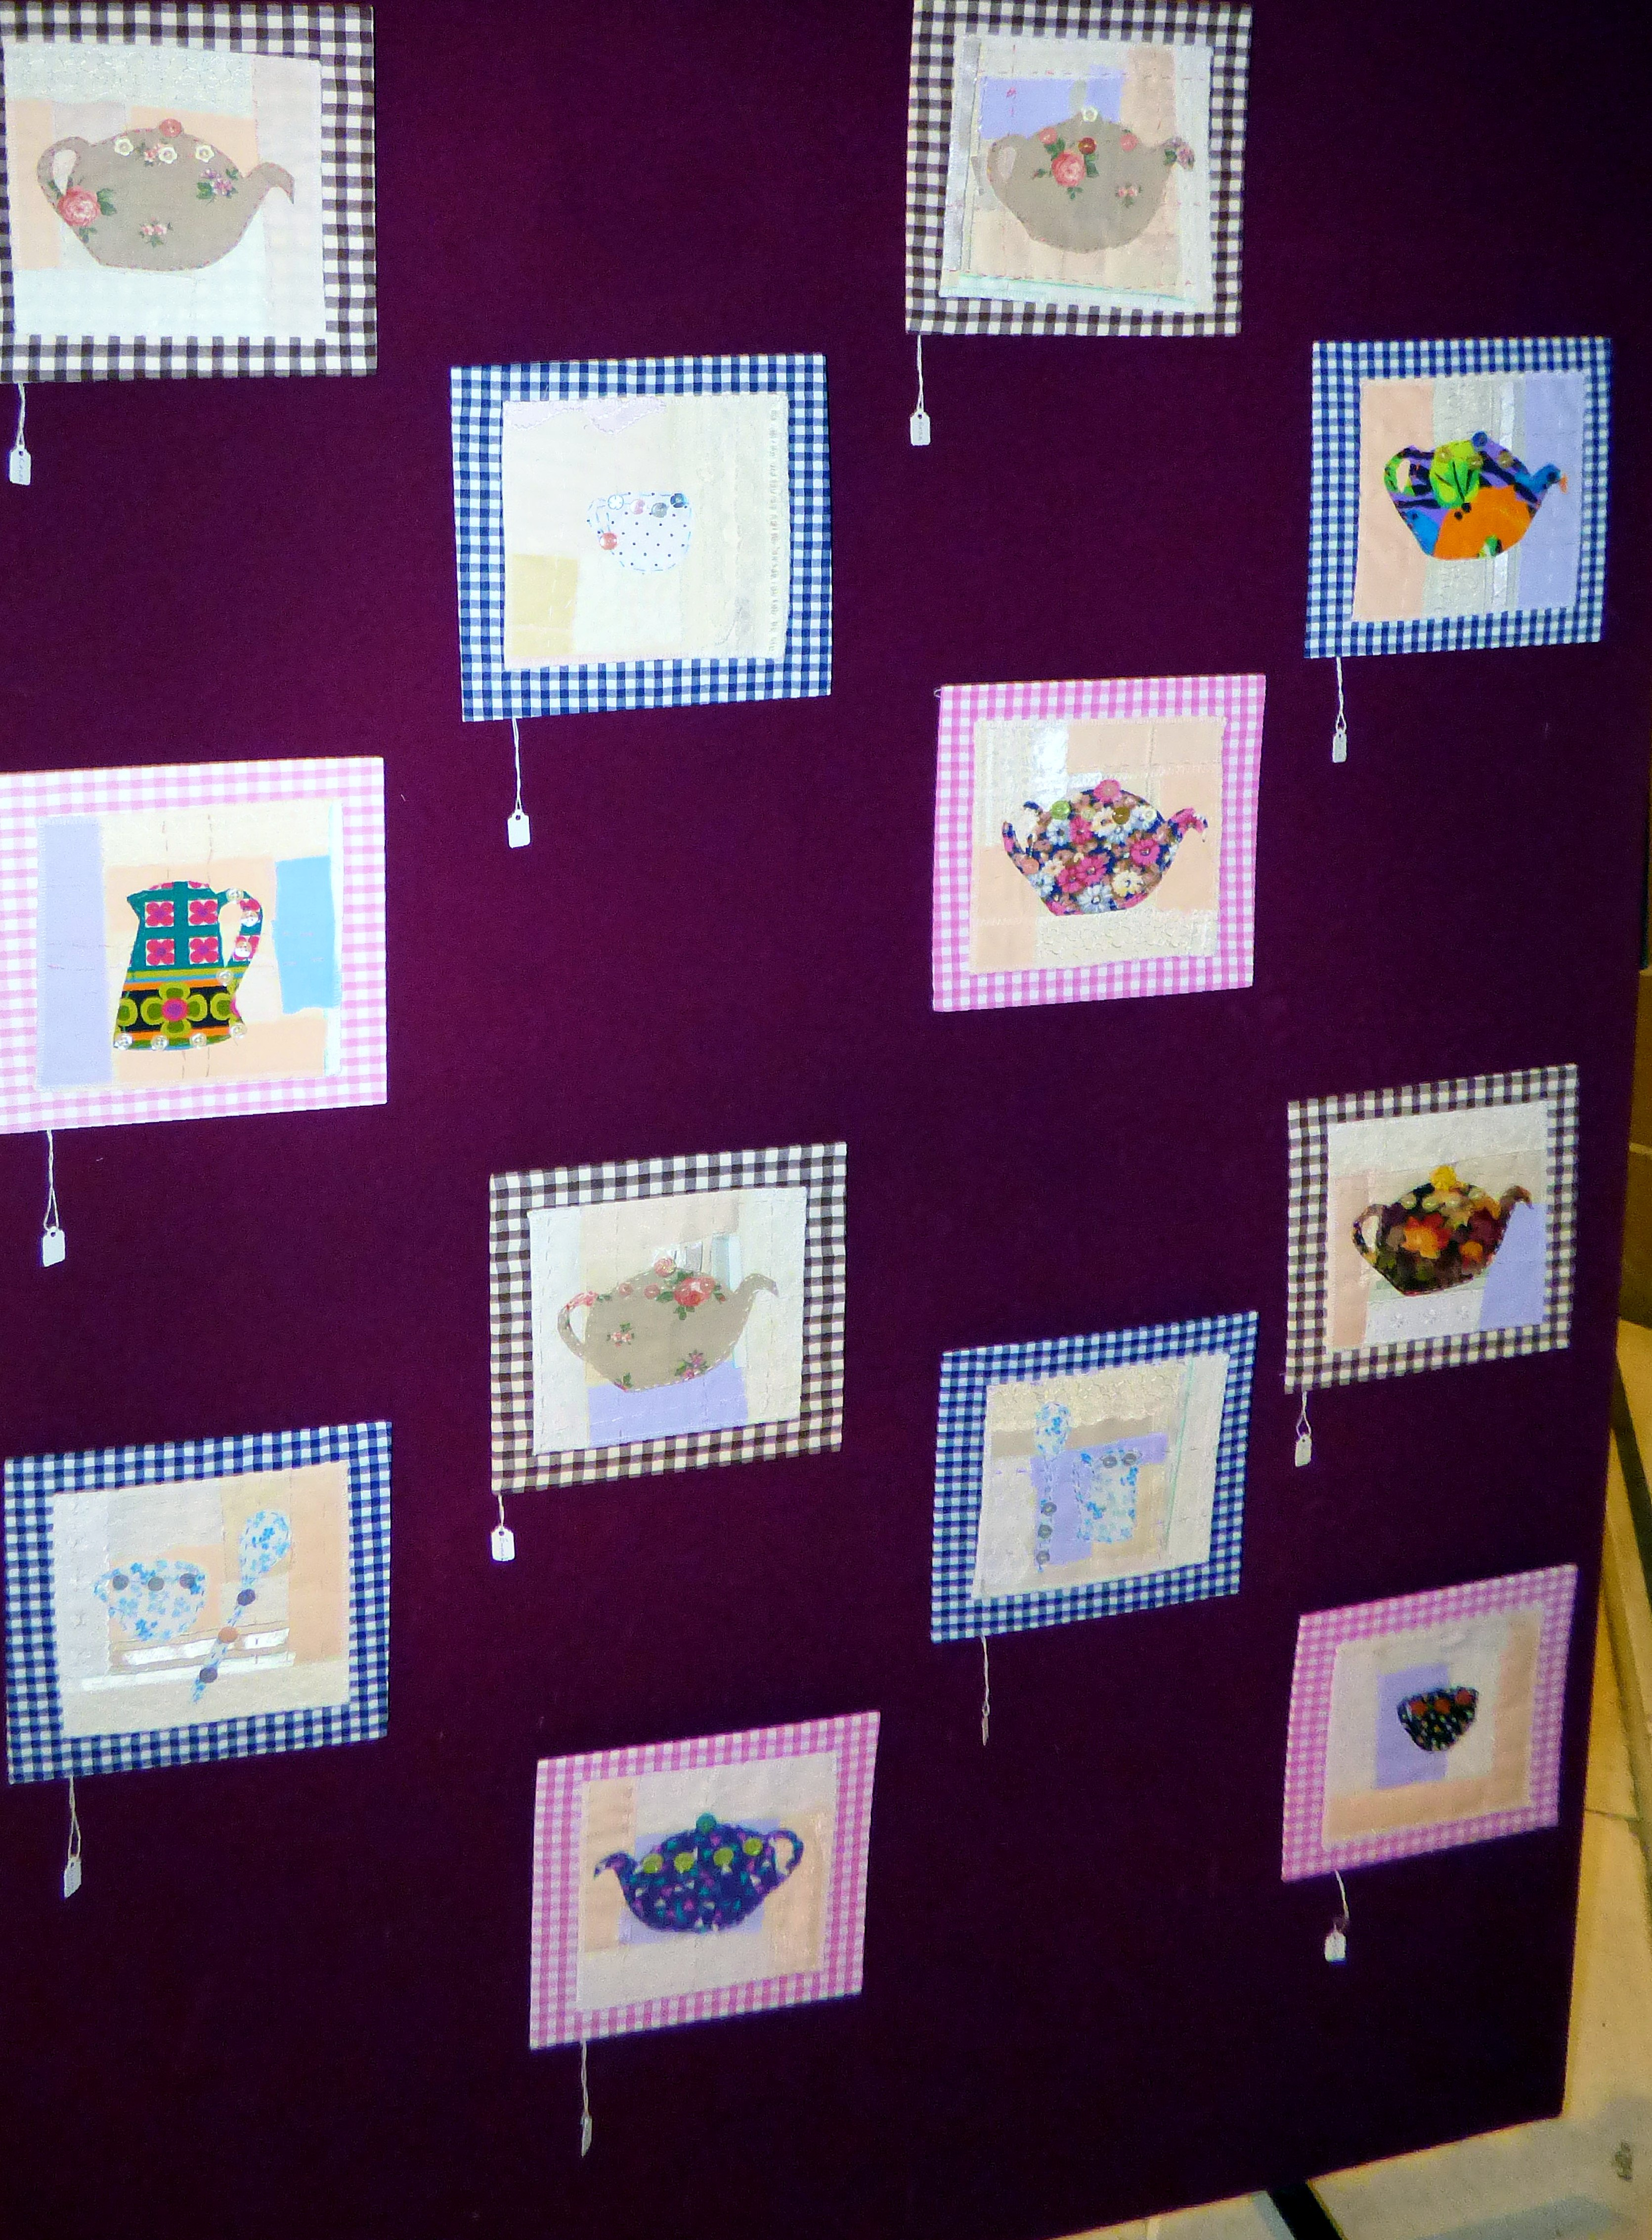 TEAPOTS, JUGS and CUPS by Merseyside Young Embroiderers at 60 Glorious Years exhibition, Liverpool Anglican Cathedral 2016